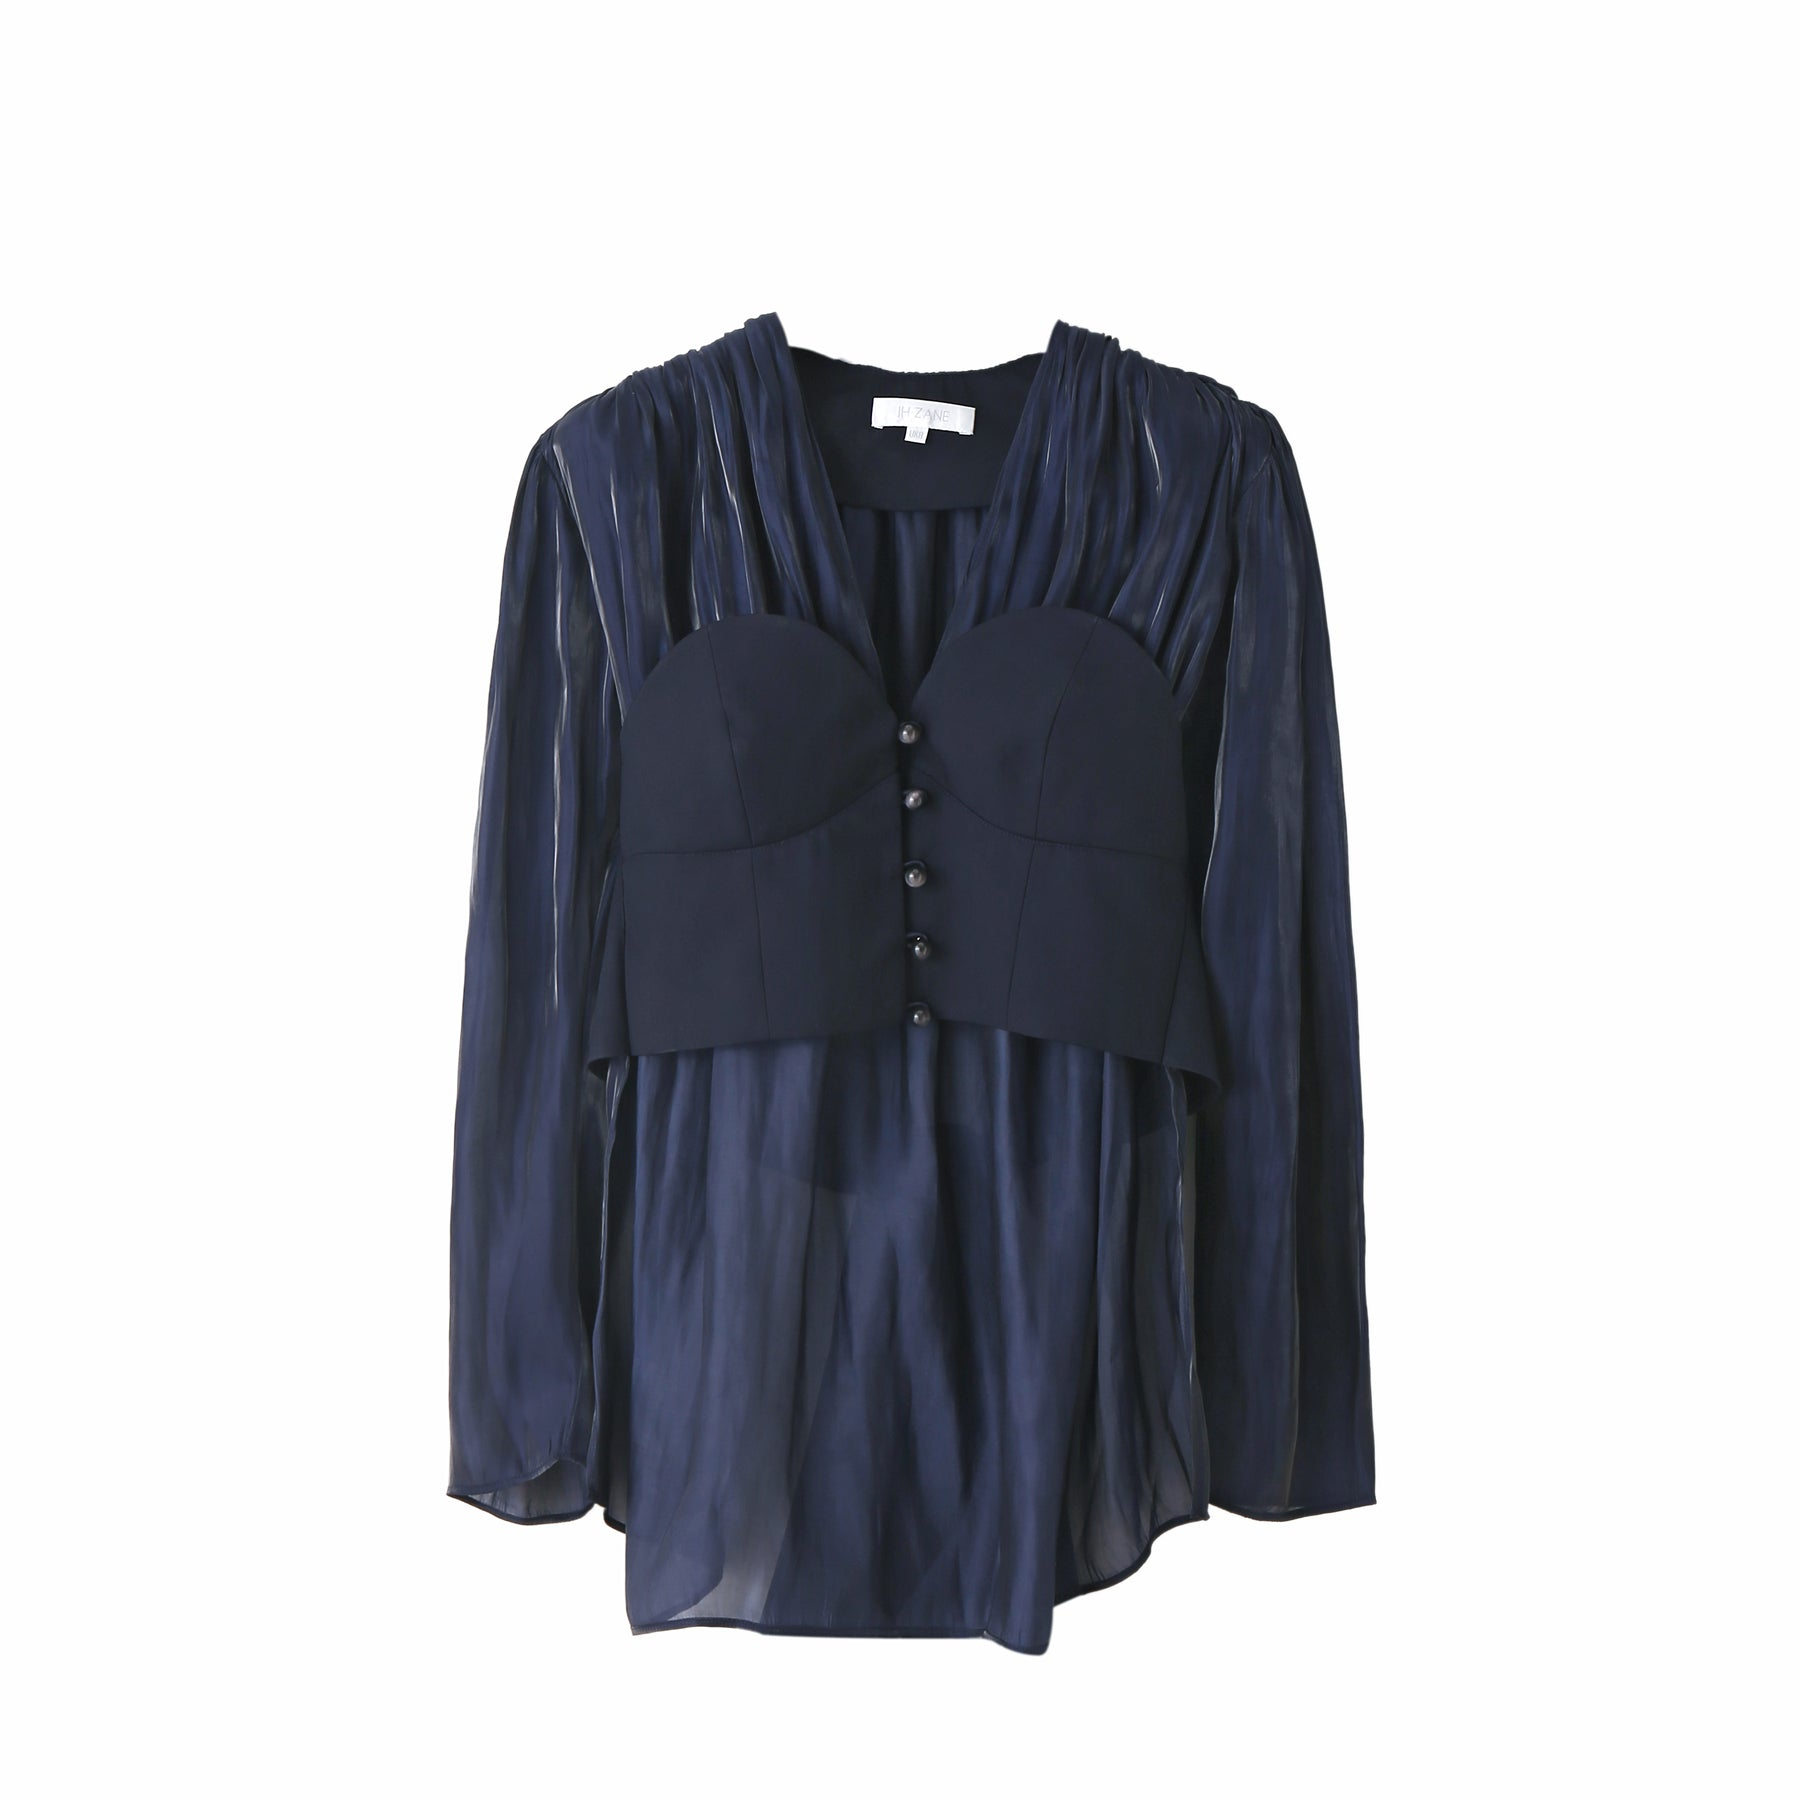 Winifred Corset Top in Navy